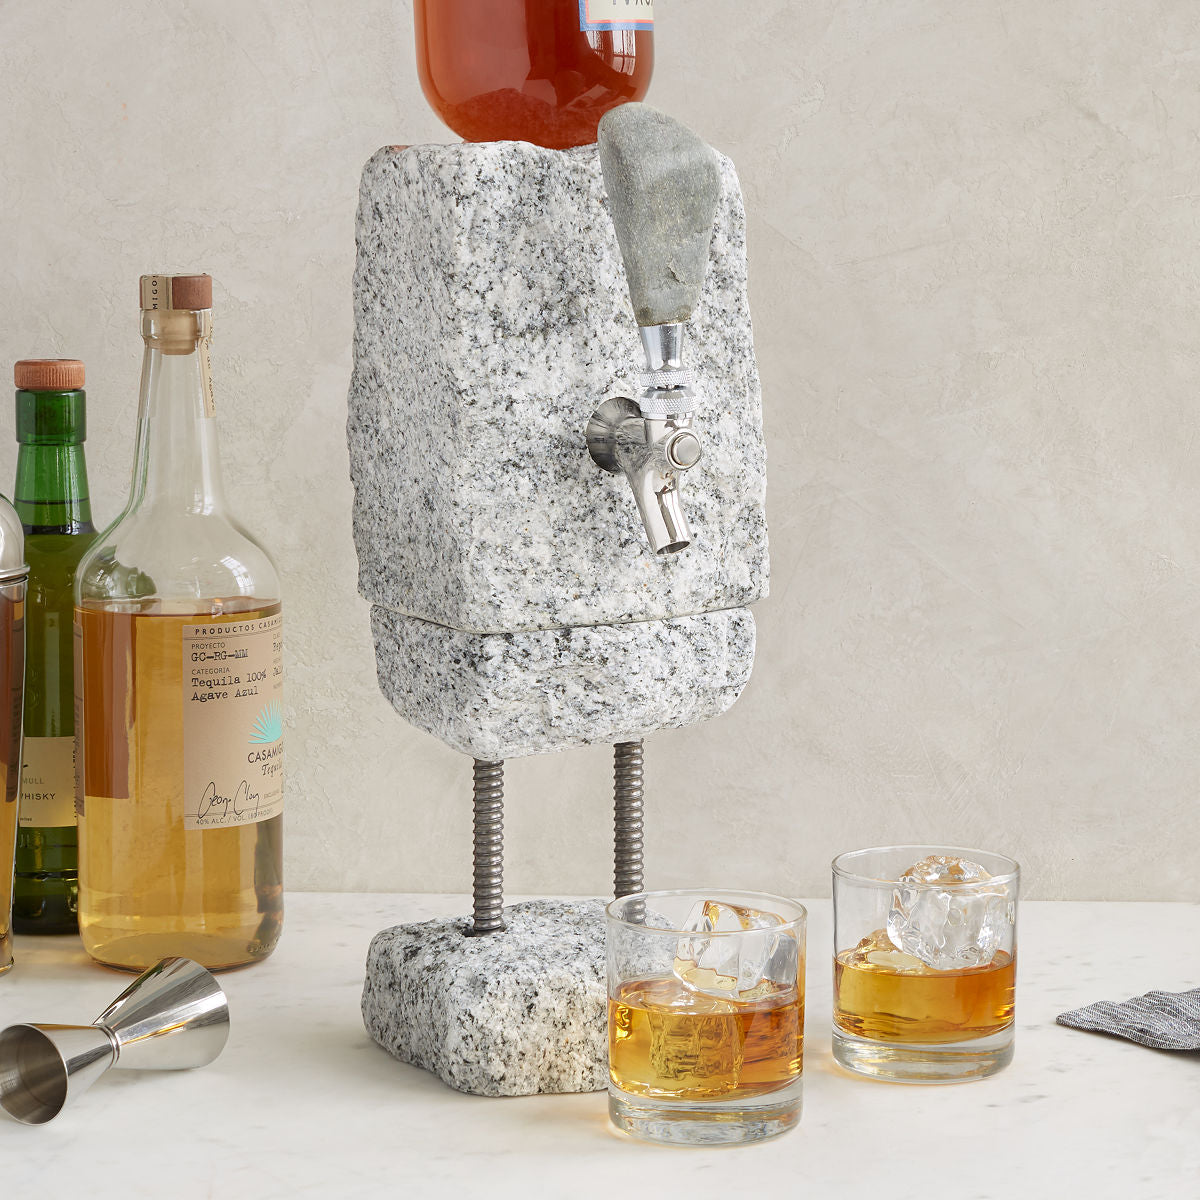 The Stone Drink Dispenser